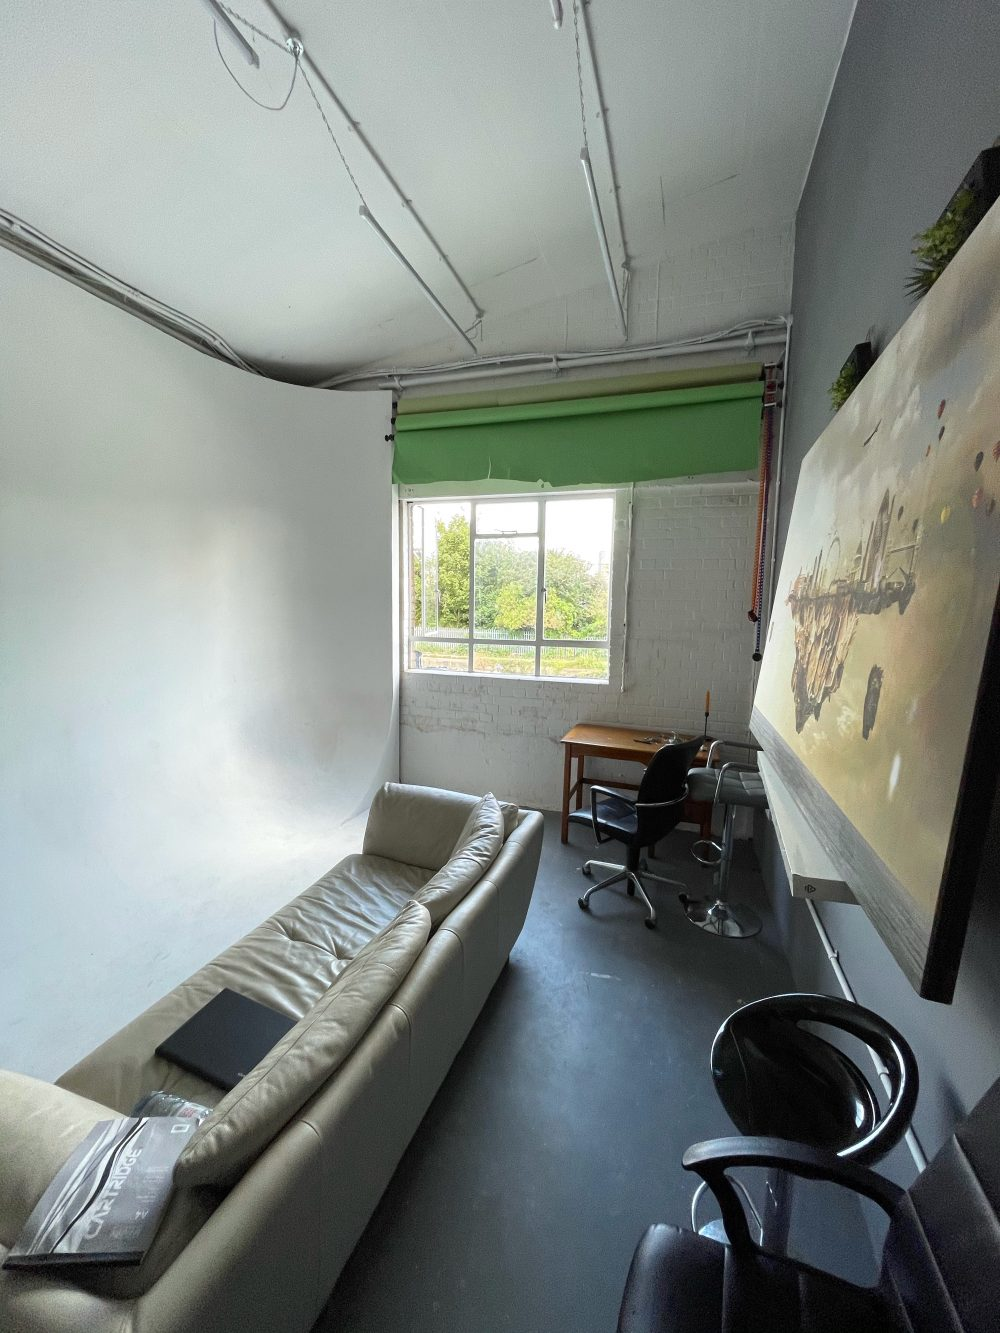 Studio Available to rent in E3 Hackney Wick Pic1